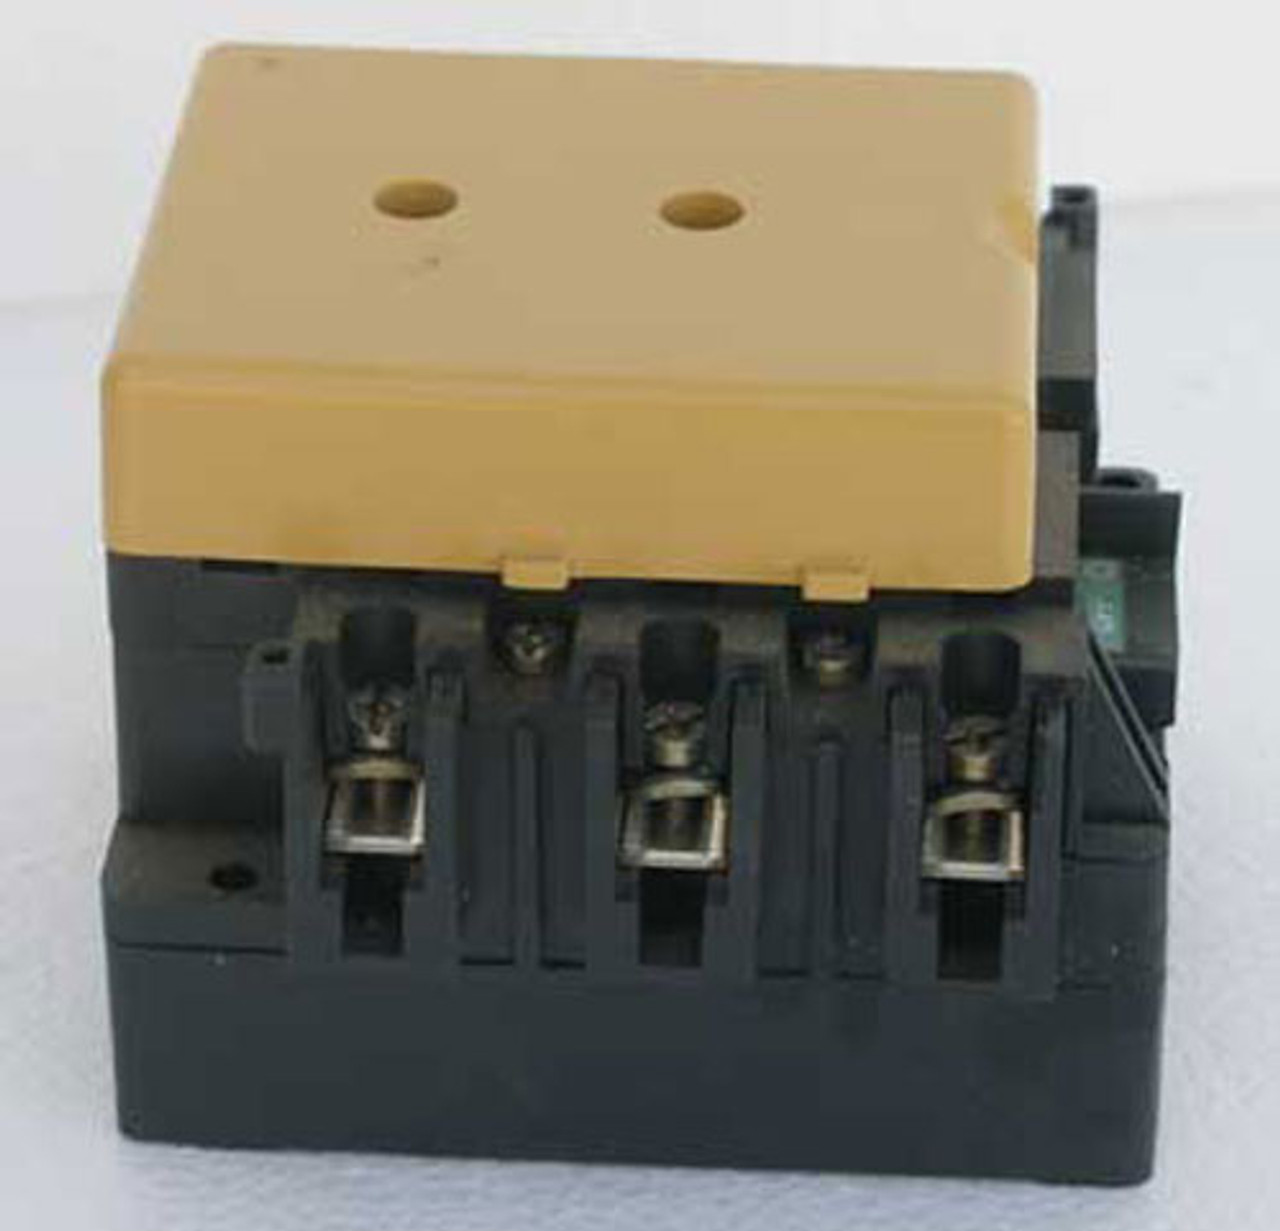 Allen Bradley 194R-NN030P3 3P 30A 600V Non-Fused Disconnect Switch - New